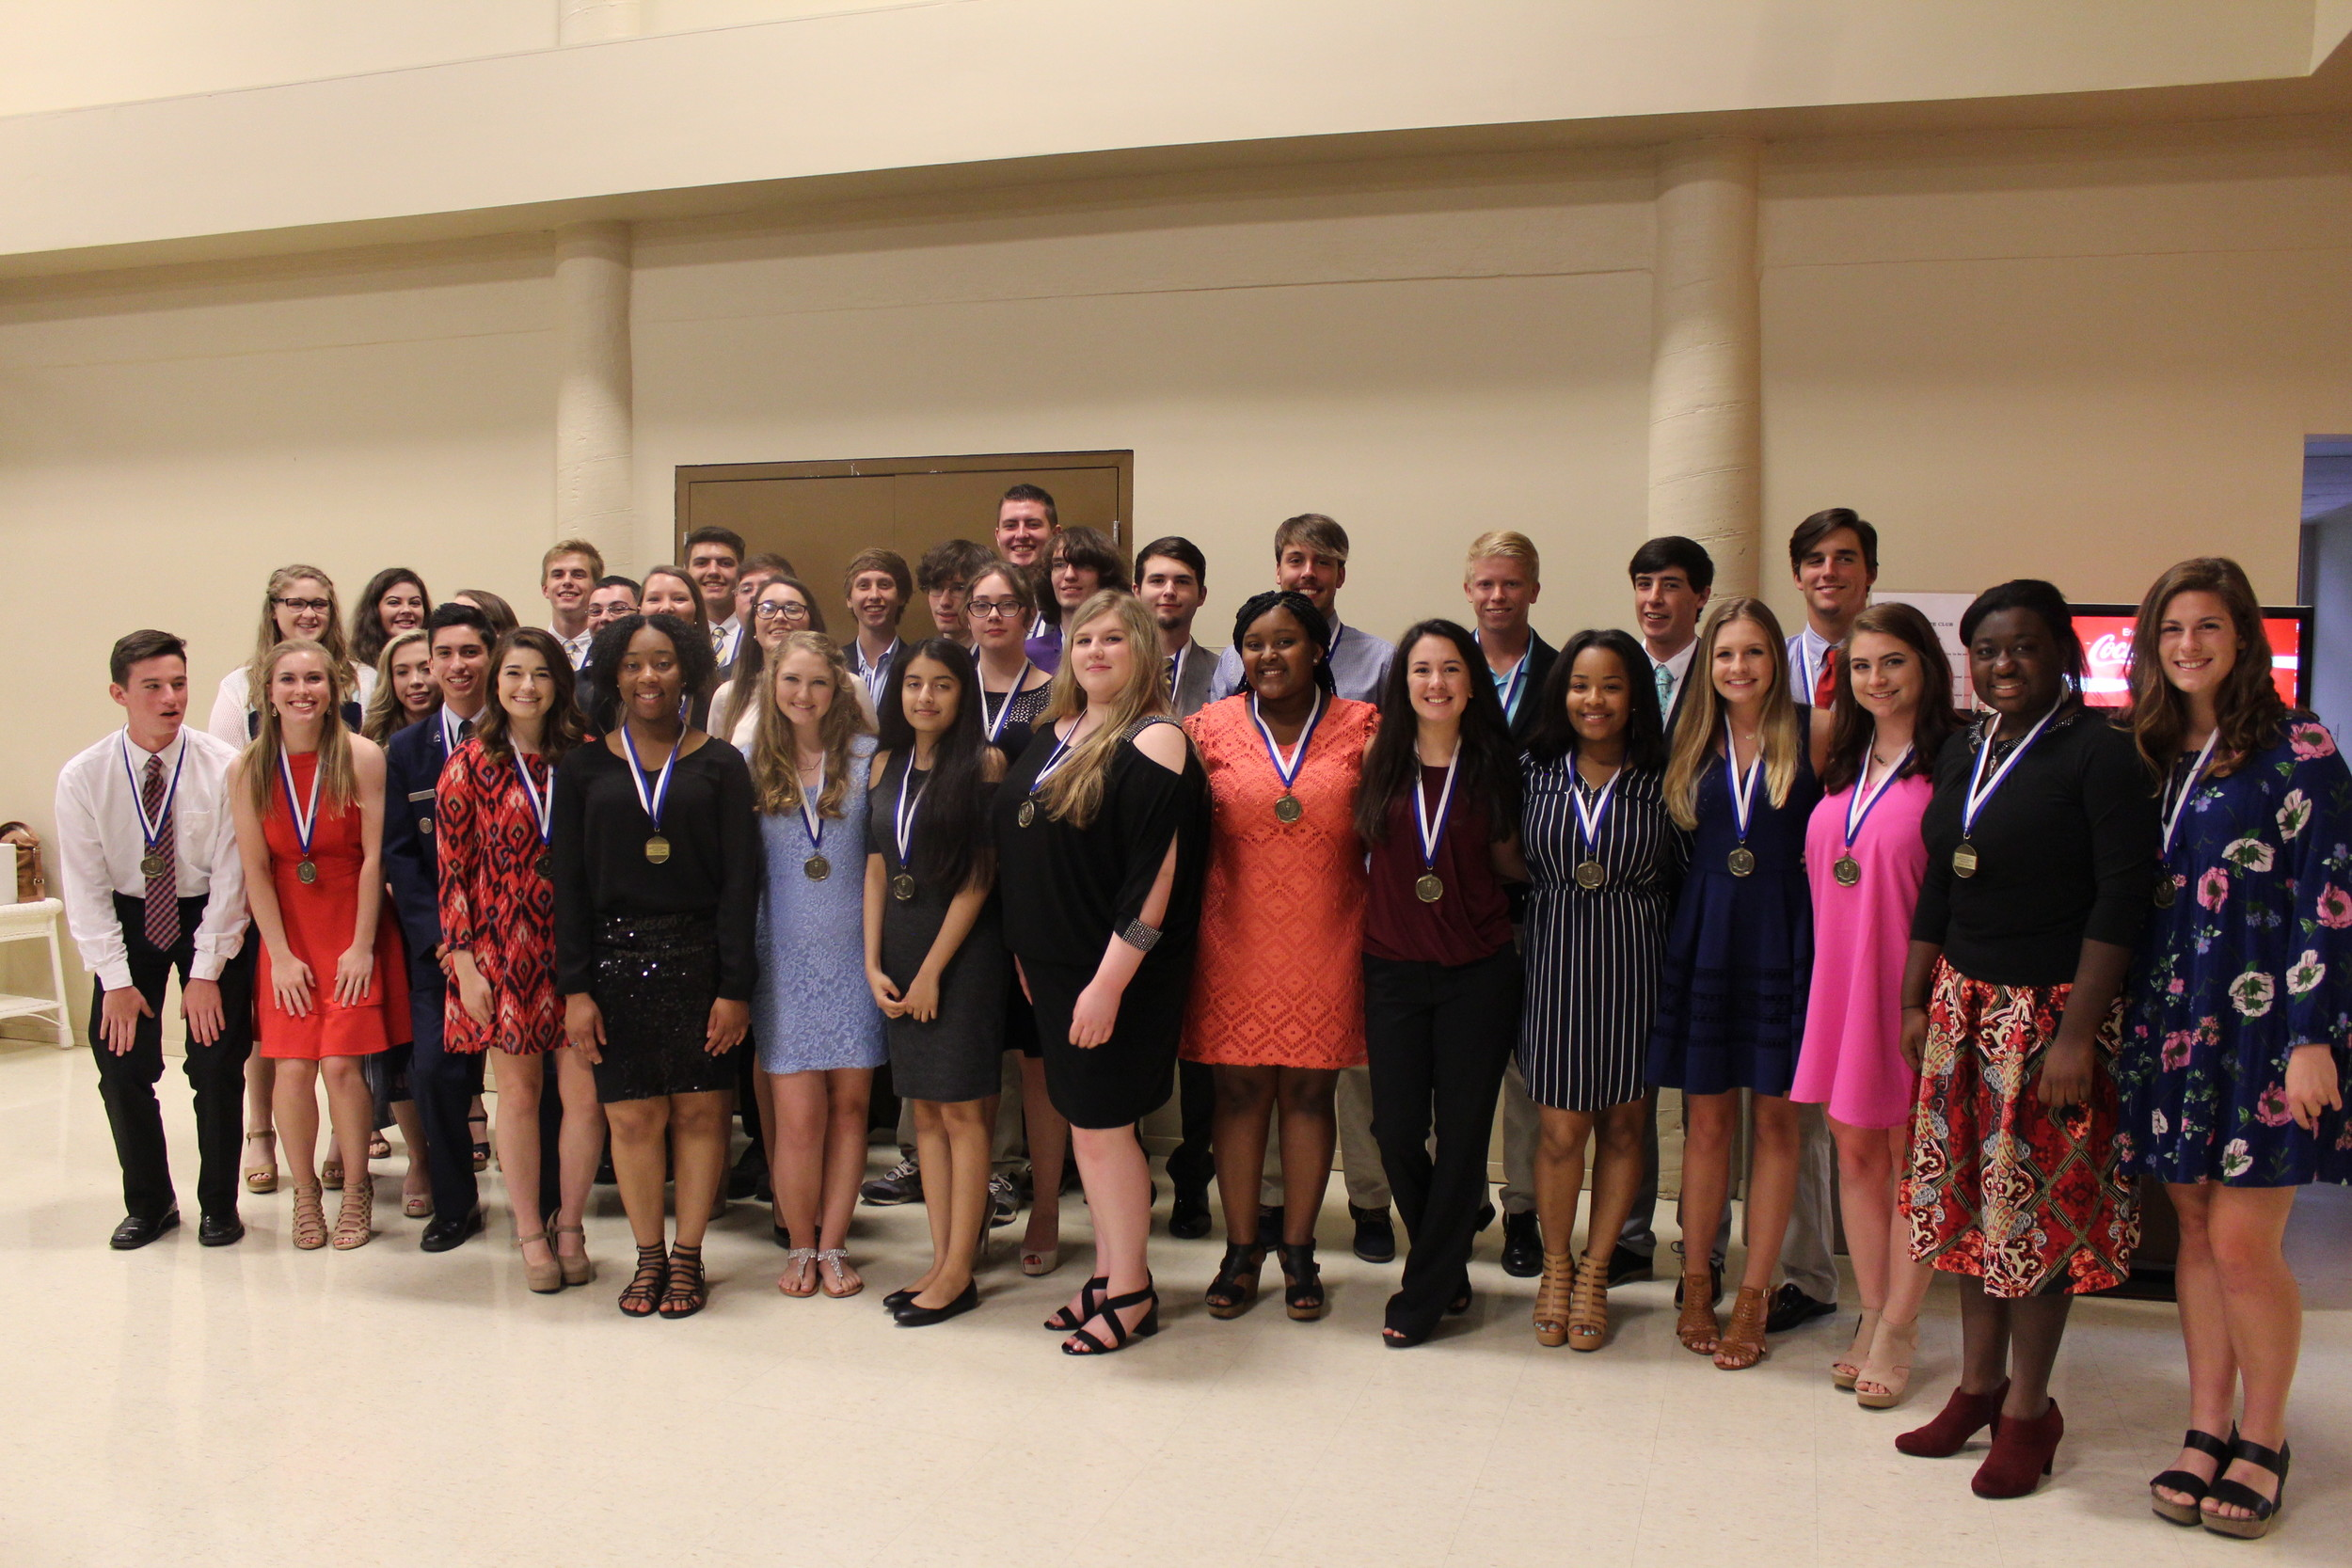 A record breaking number of students from Foley High School will receive the highest diploma in 2017. The students were recognized and celebrated during a ceremony held in their honor on May 11.